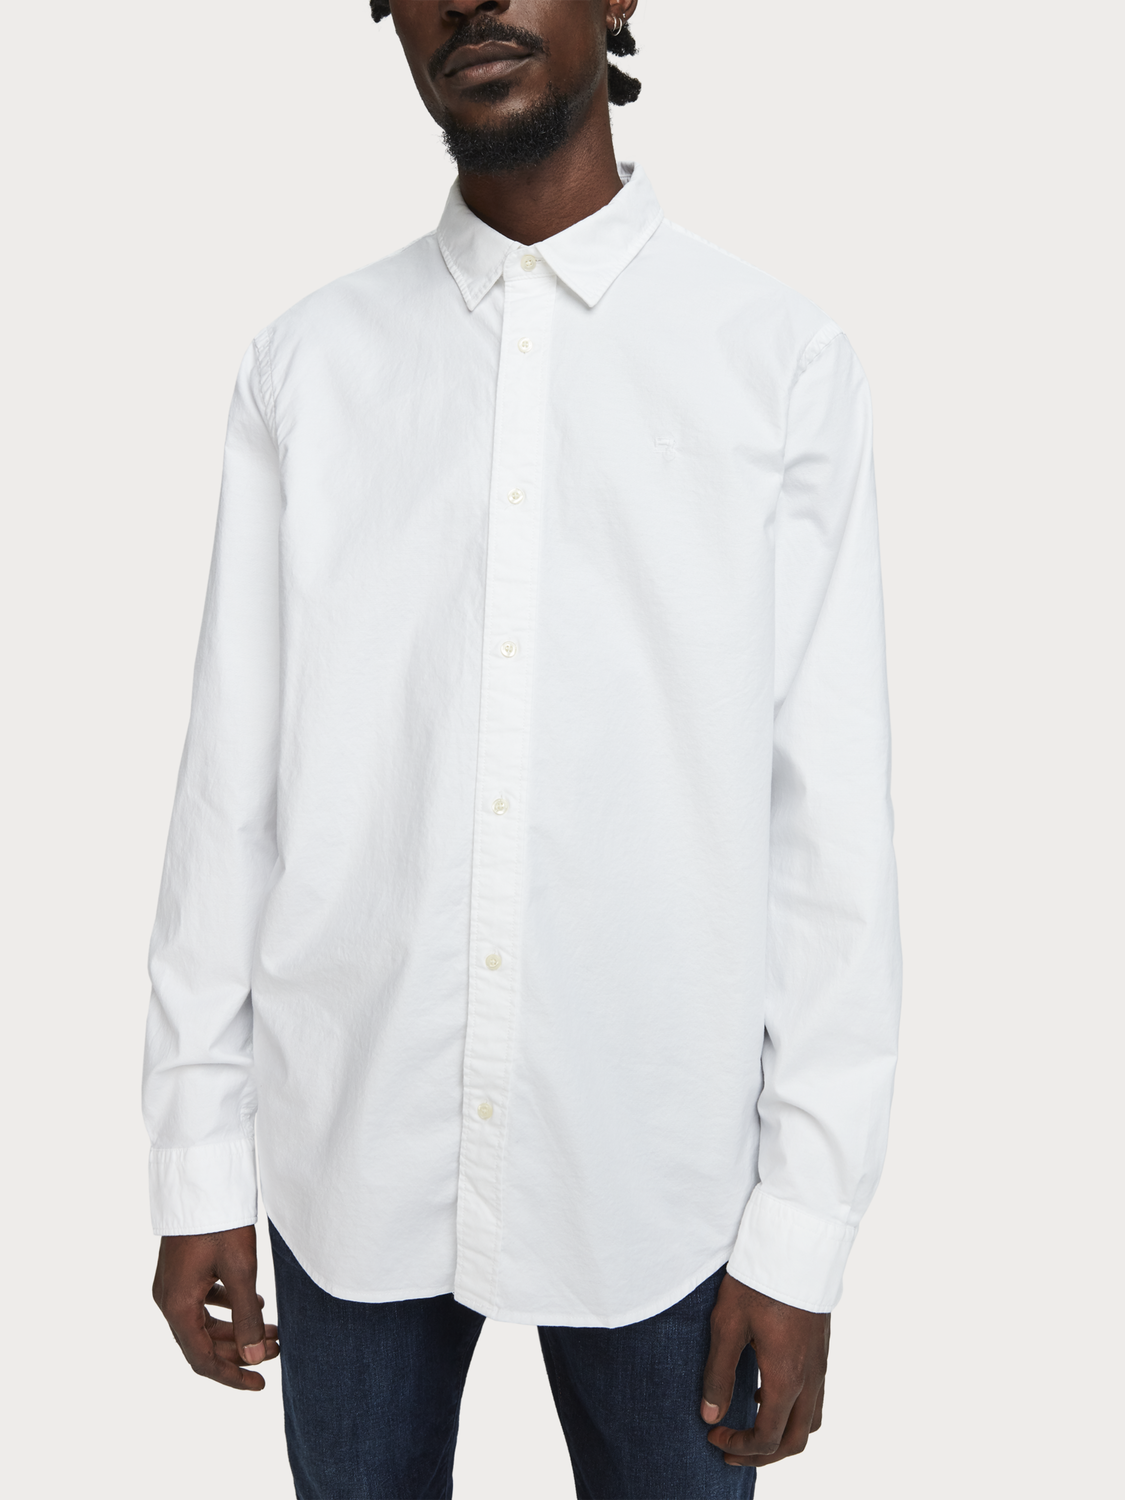 Men Classic Oxford Shirt | Relaxed fit